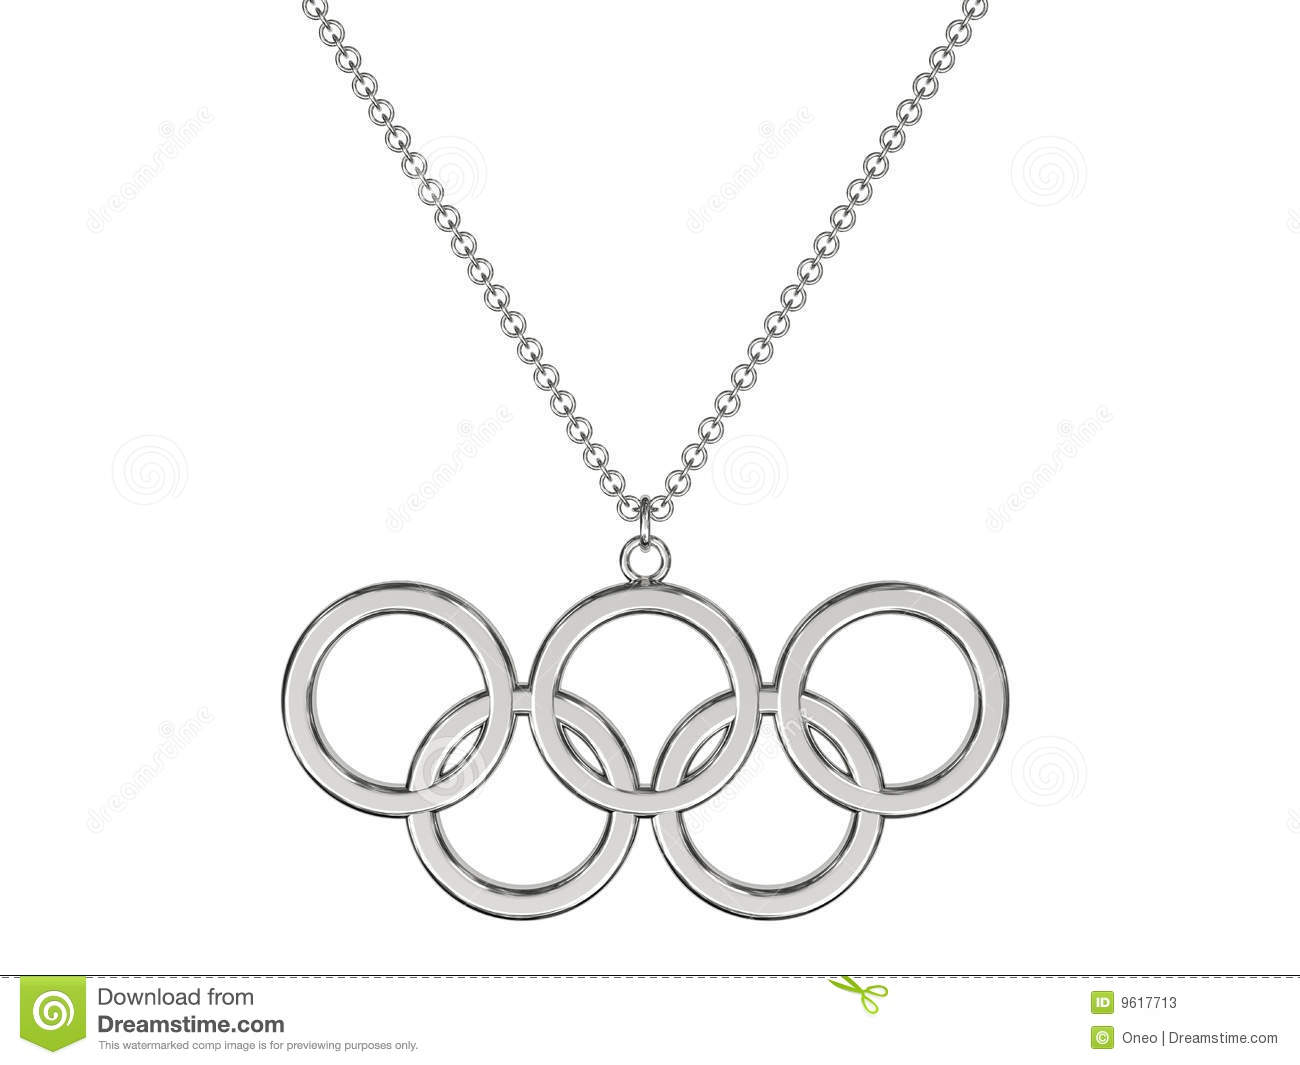 Platinum Or Silver Pendant In Shape Of Olympic Rings On Chain Isolated